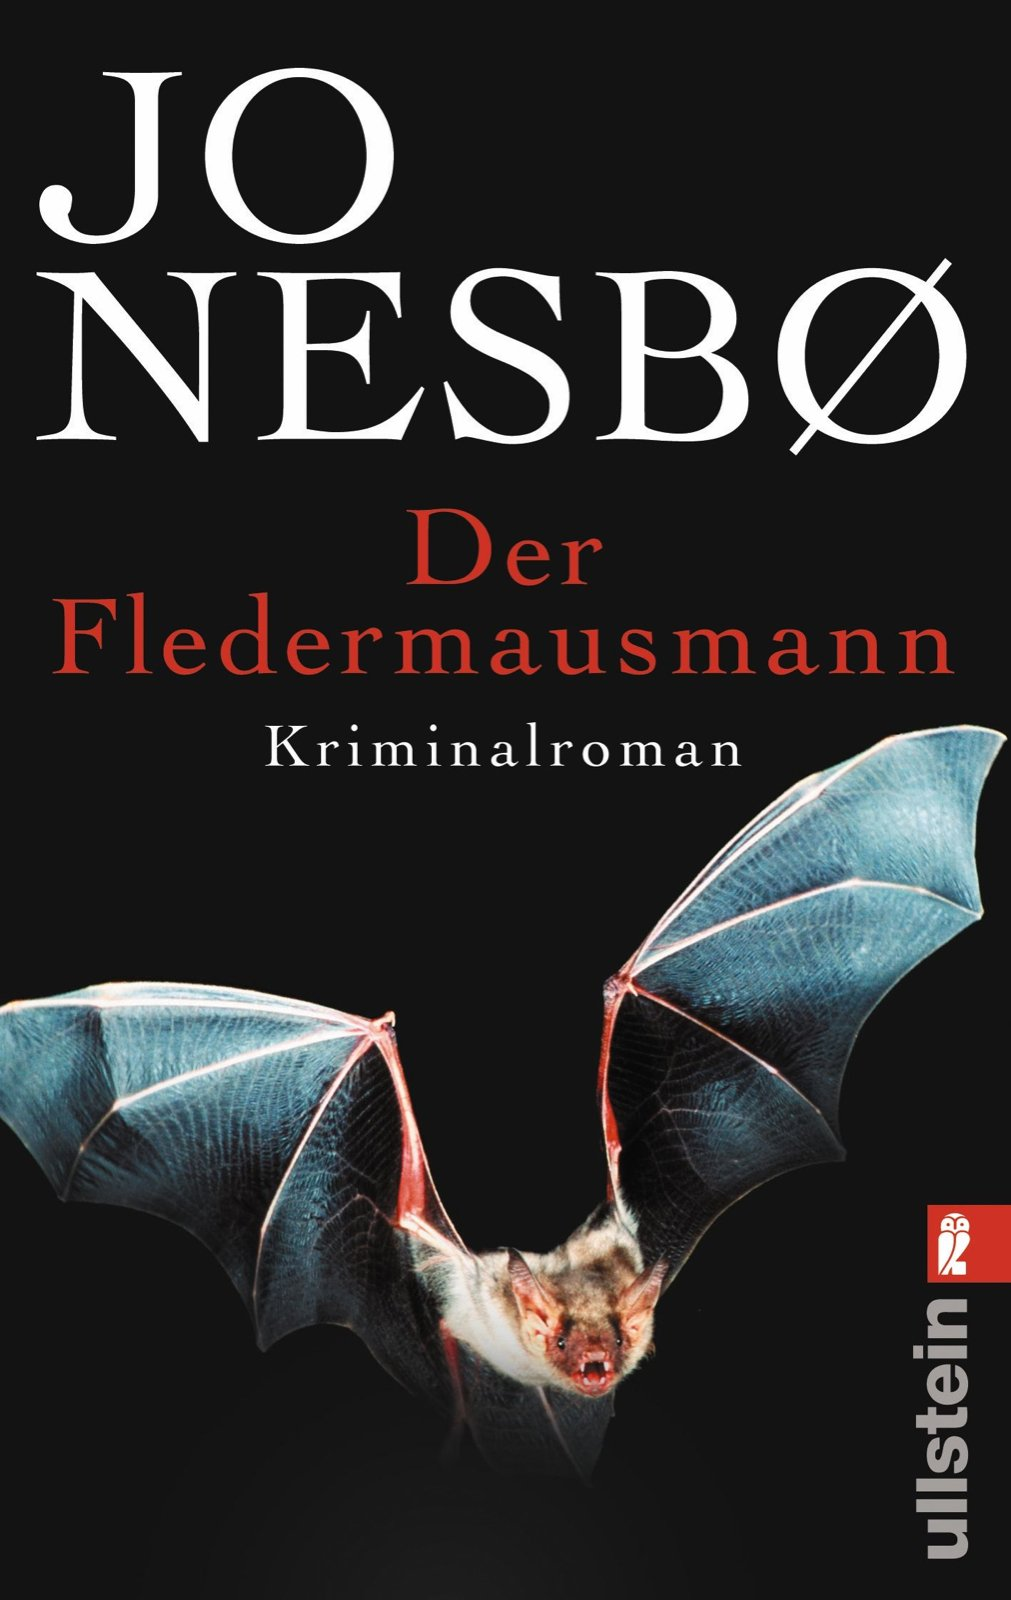 Der Fledermausmann: Harry Holes erster Fall (Ein Harry-Hole-Krimi, Band 1)